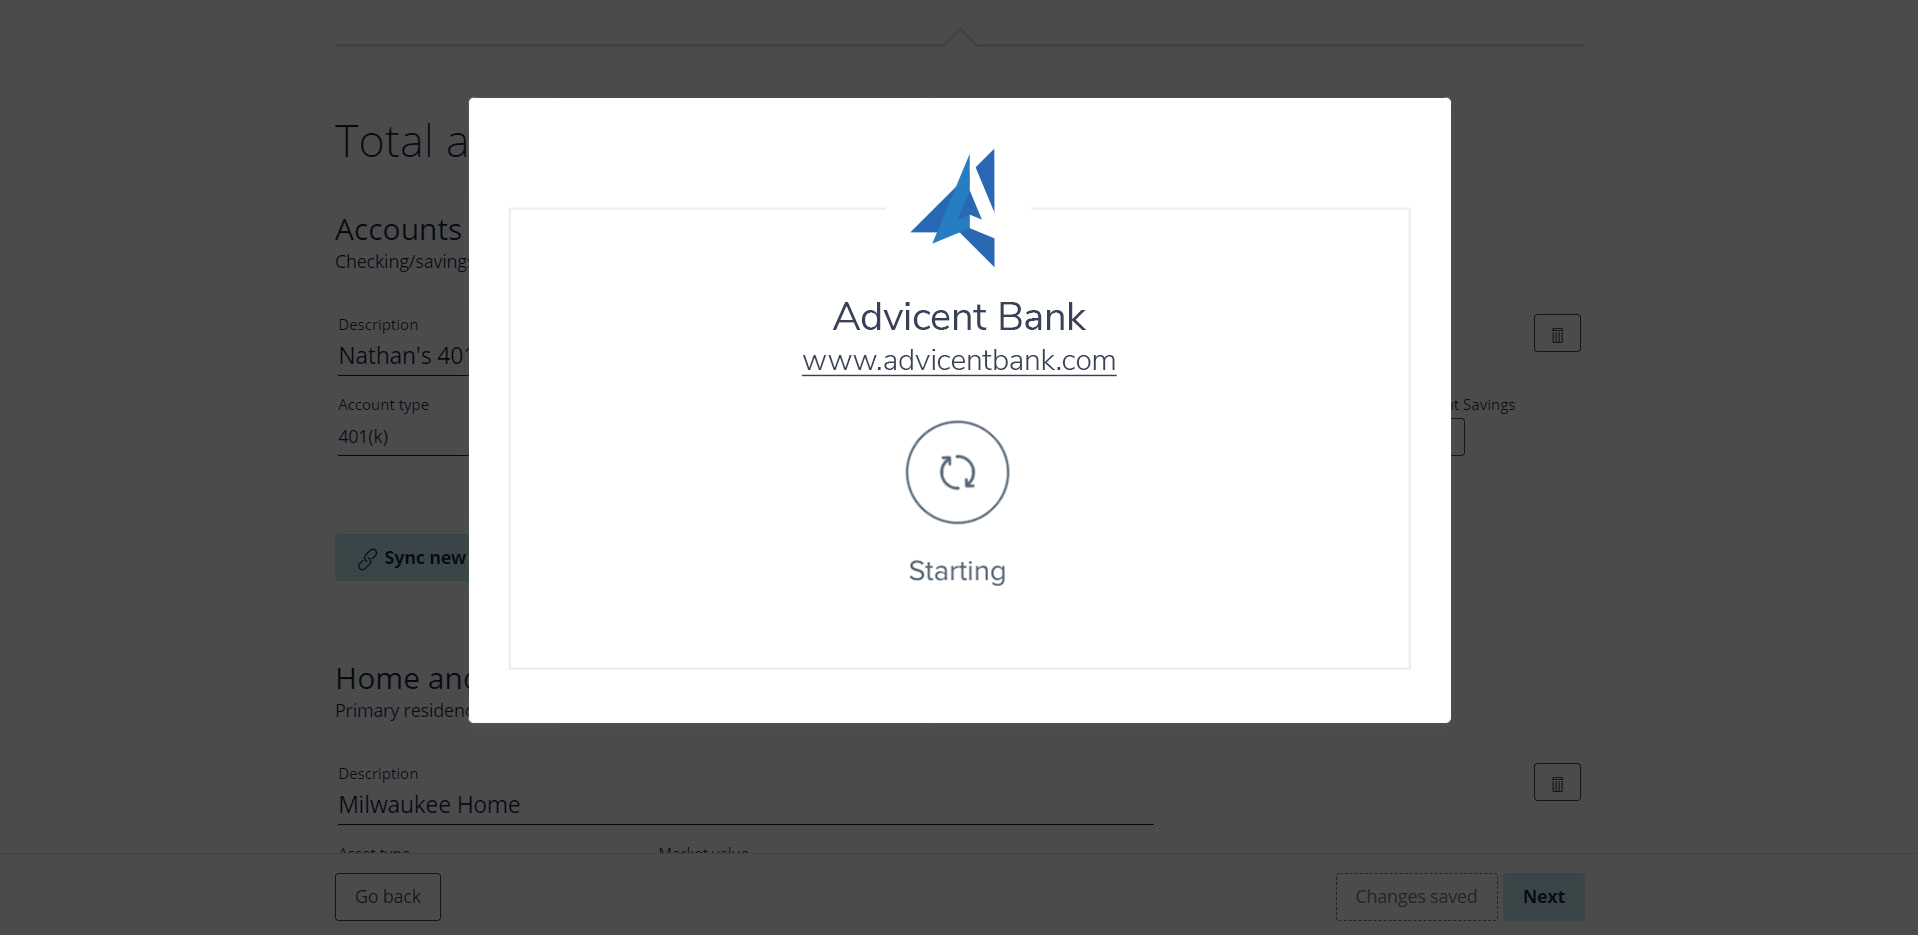 Account aggregation with MX in NaviPlan